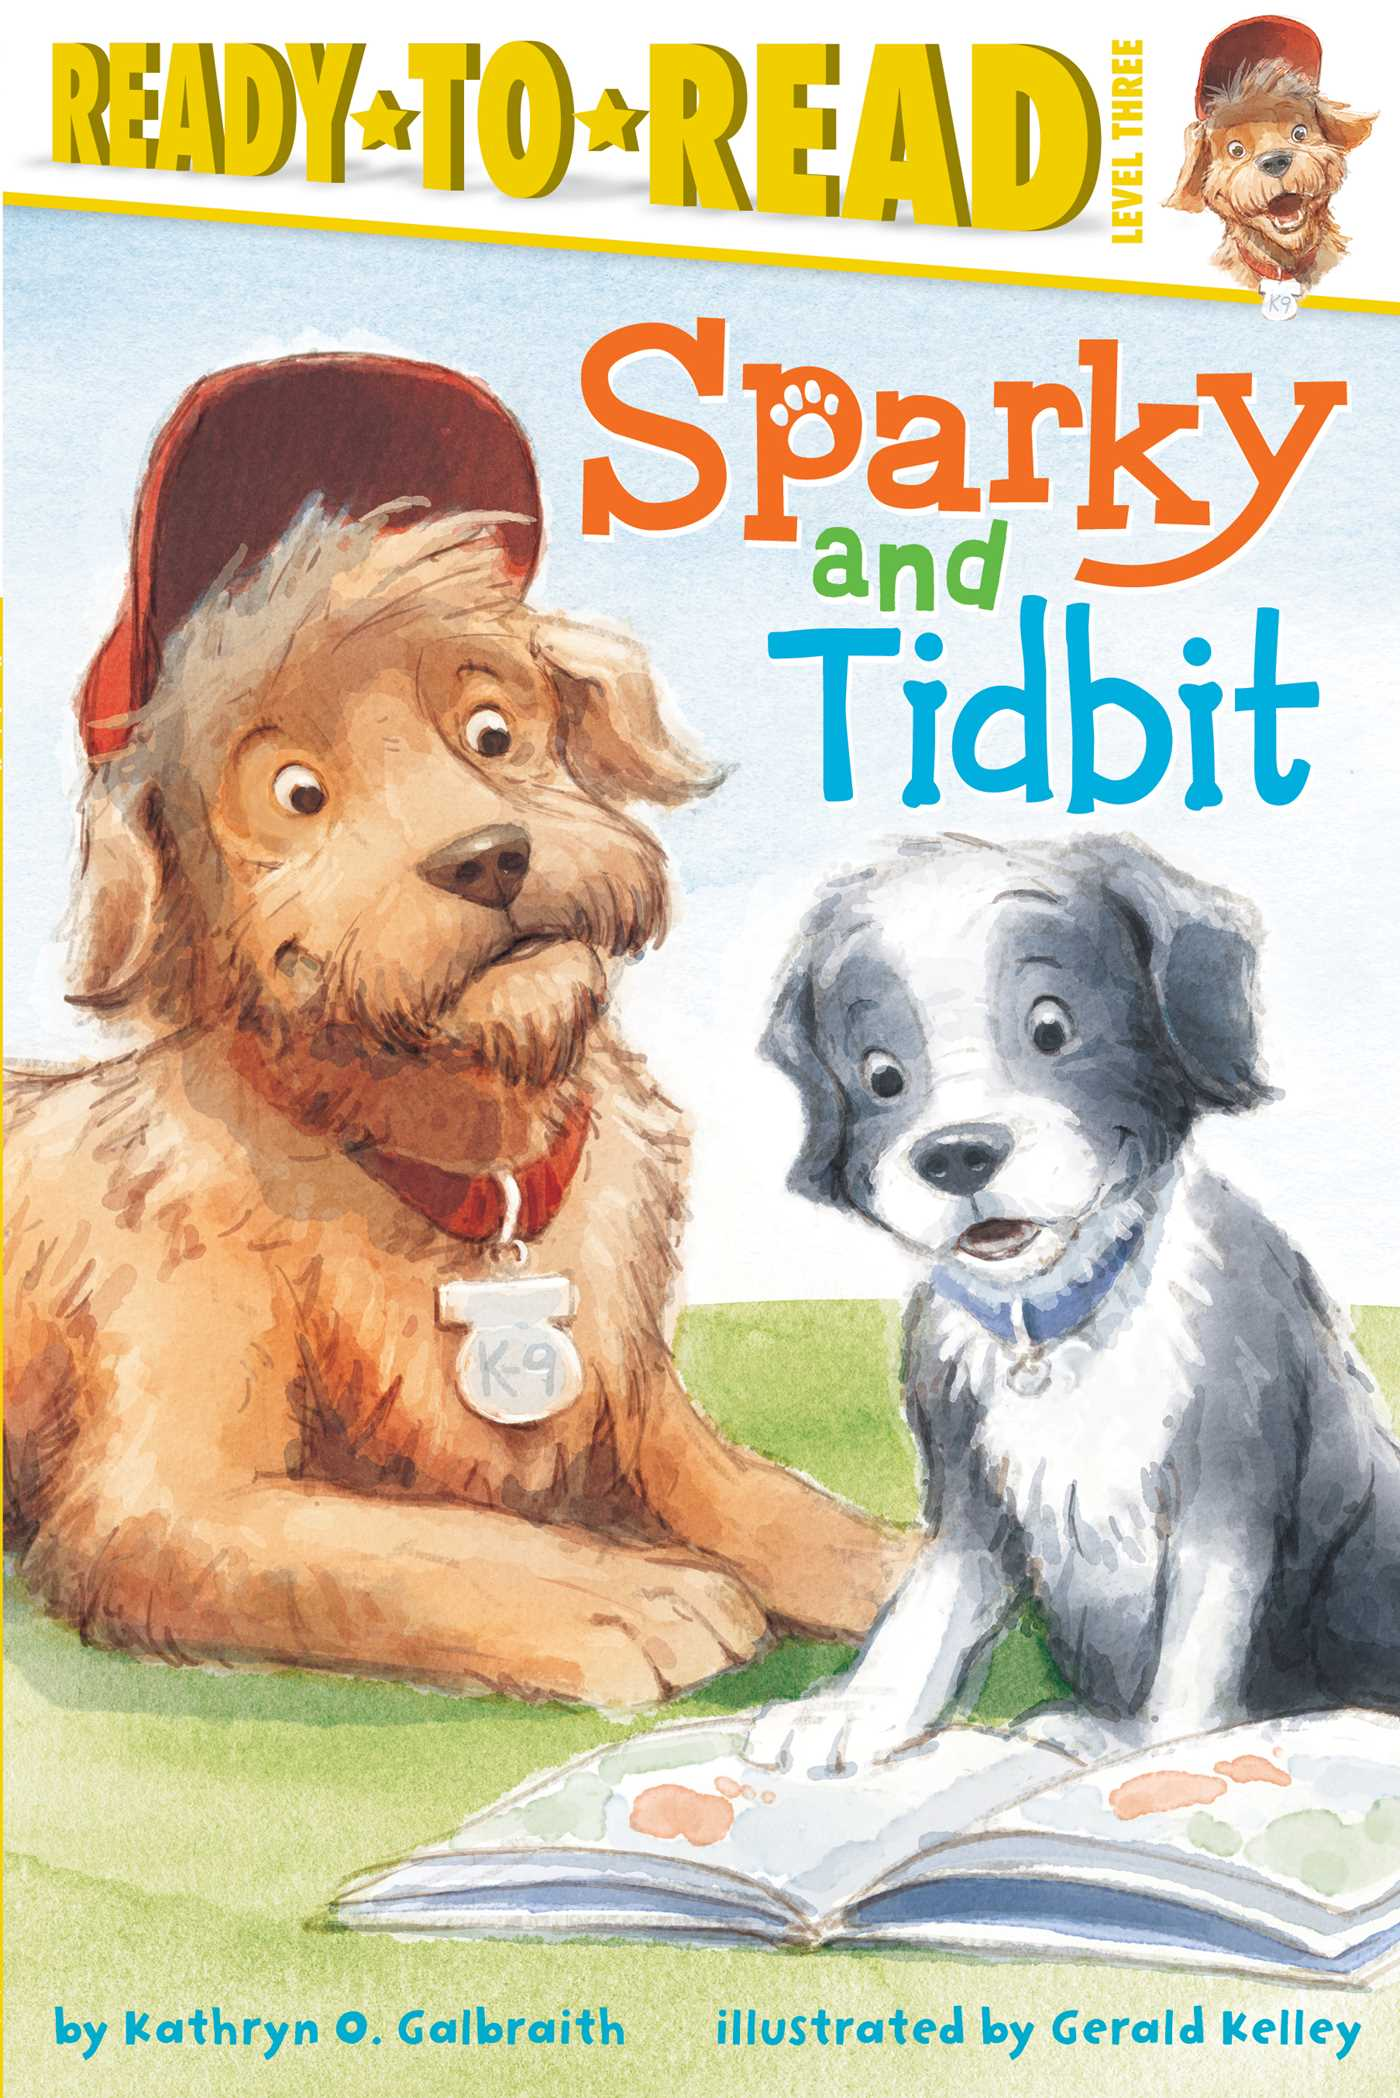 Sparky and tidbit 9781481404242 hr